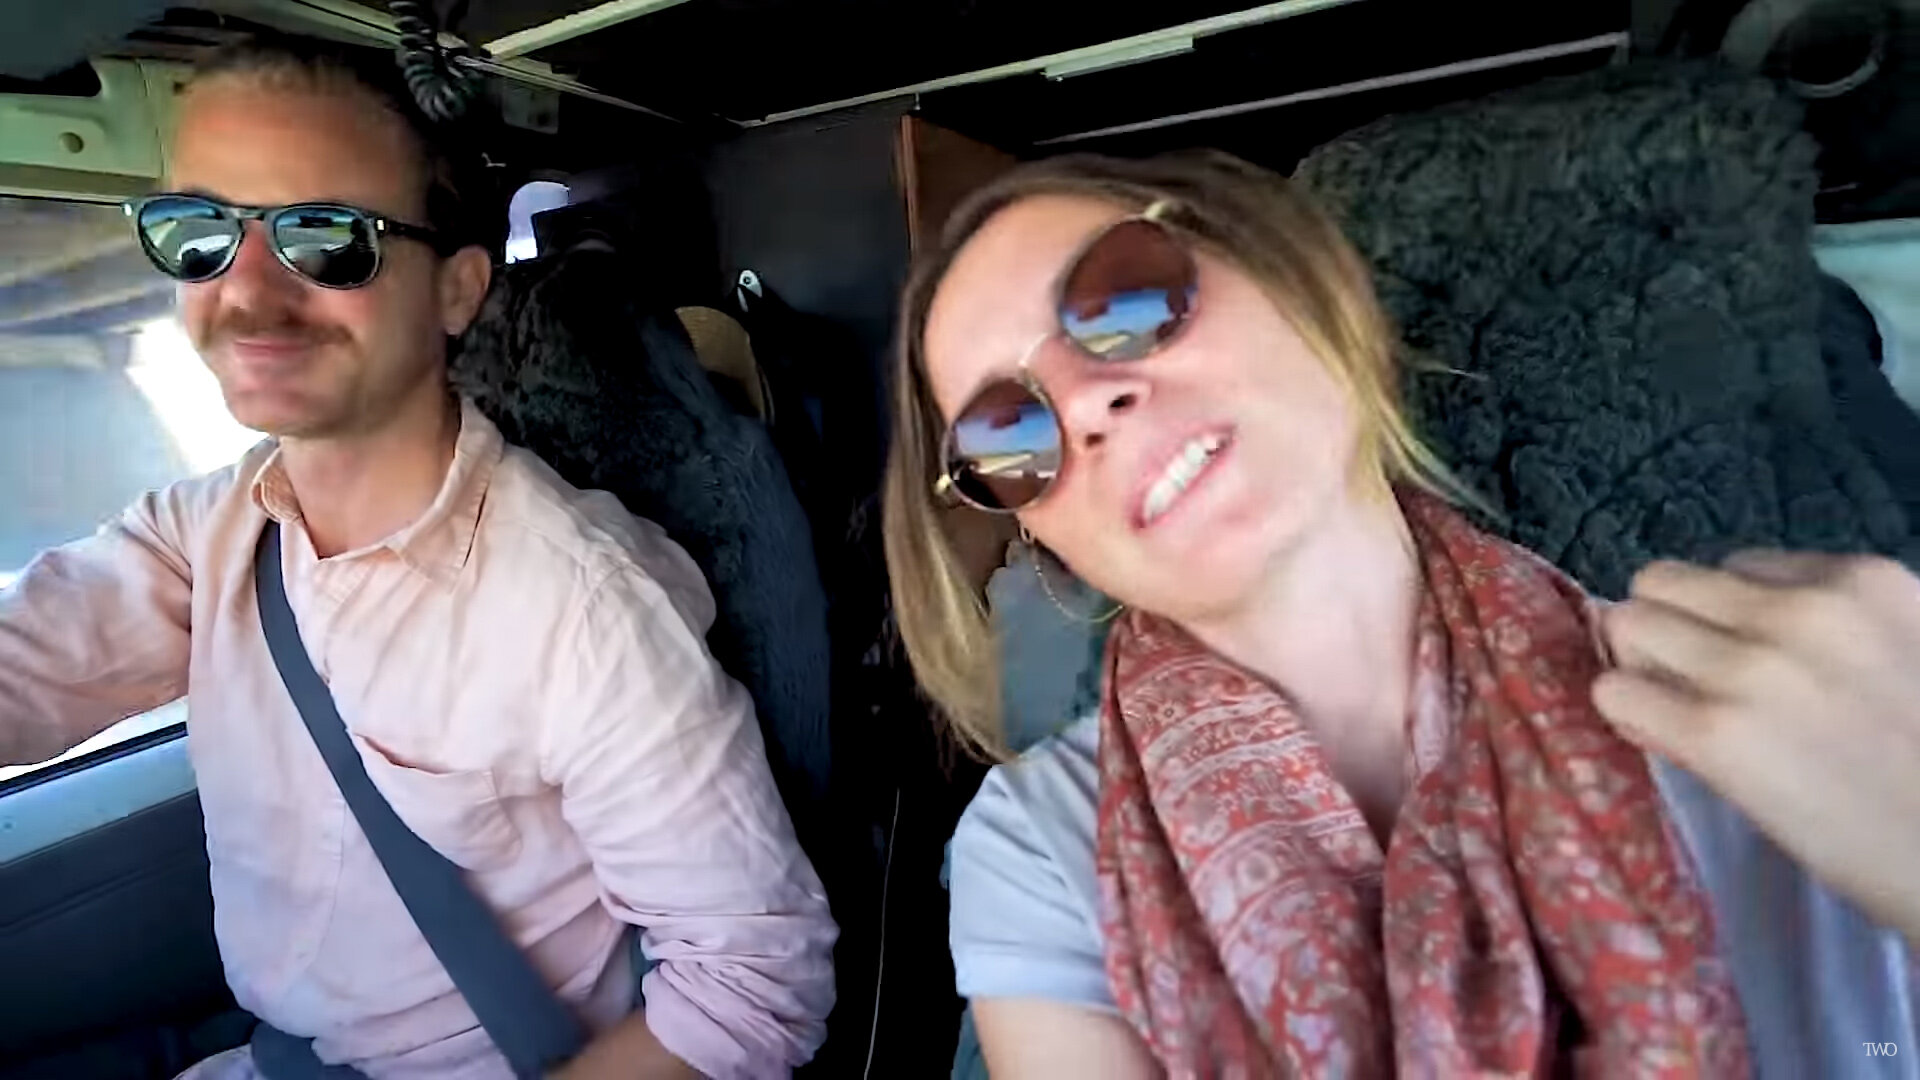 Their most recent videos show the couple driving through Pakistan. Image credit:    The Way Overland   /Fair use